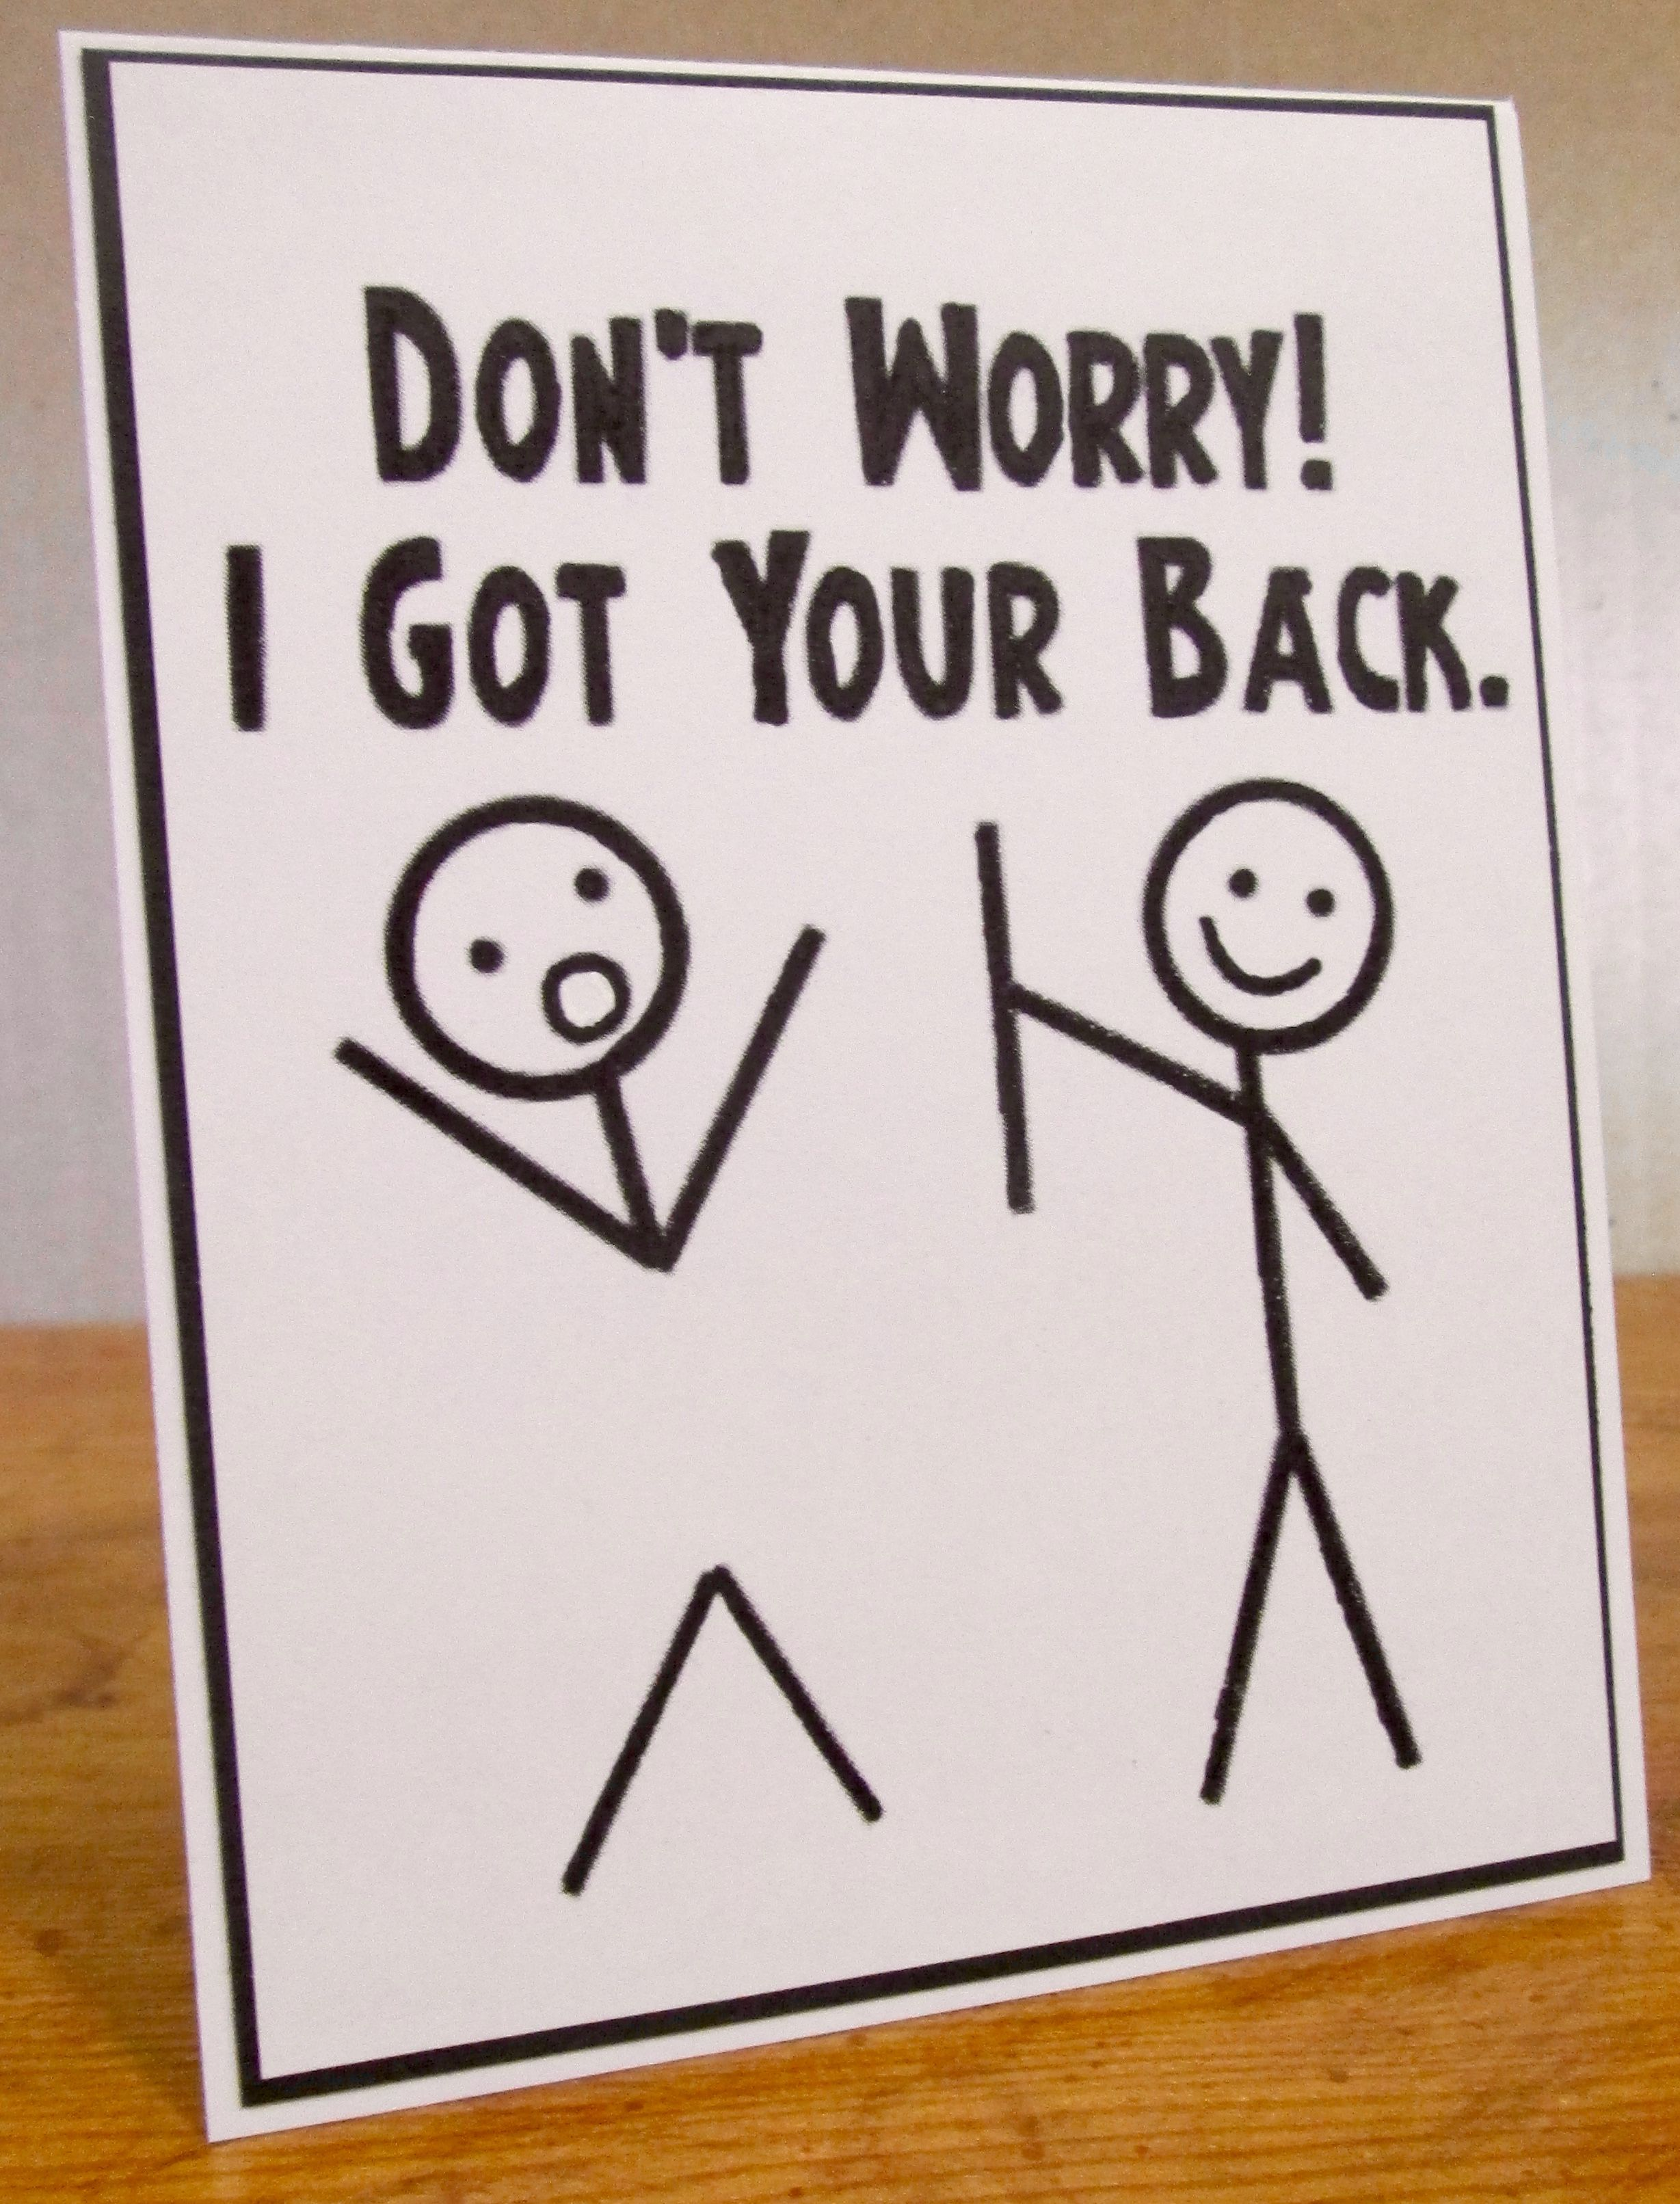 Get Well Card For Back Surgery Funny Get Well Cards Get Well Cards Encouragement Cards